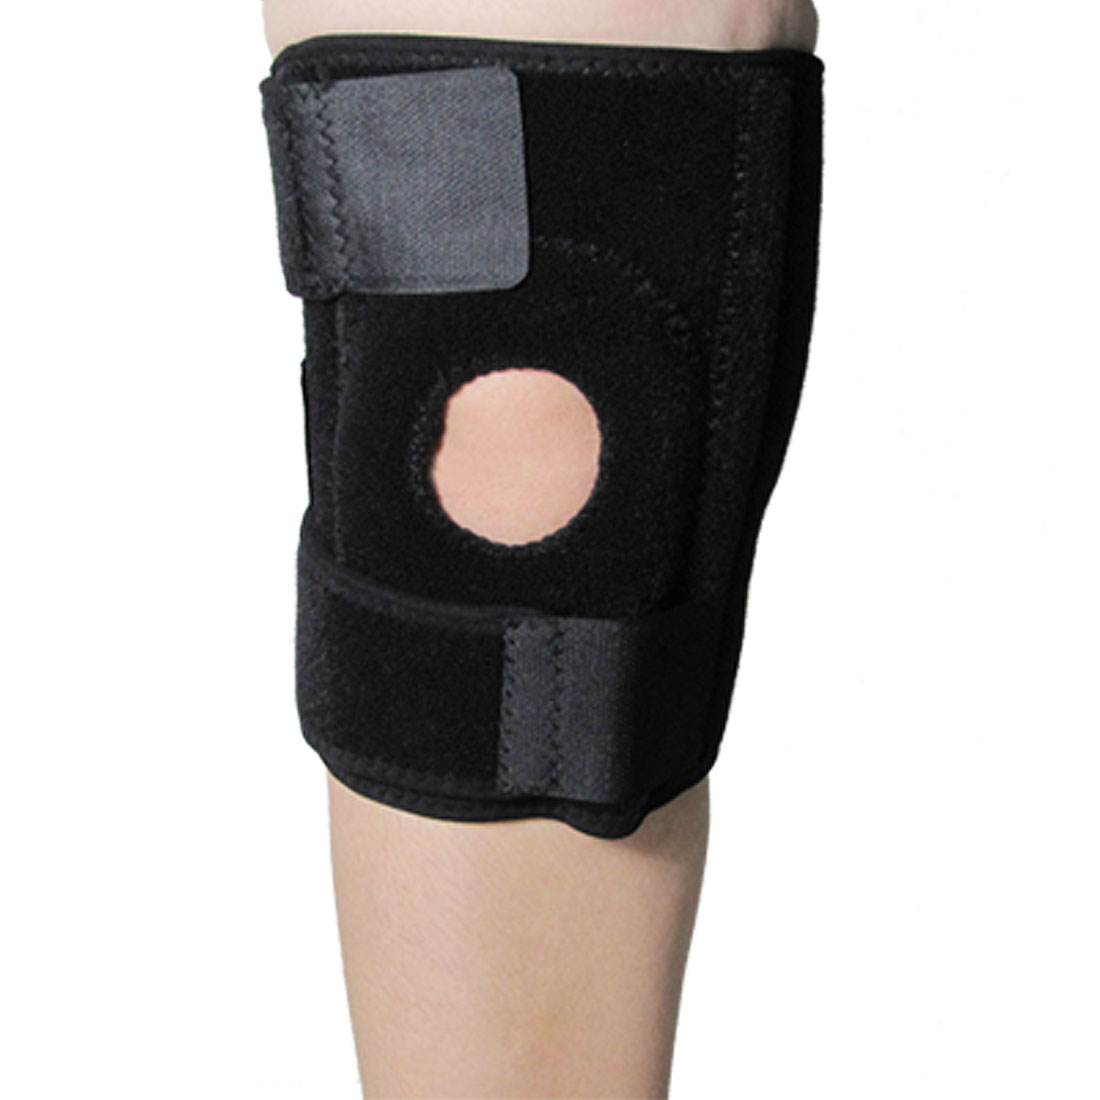 Black Hook and Loop Fastener Adjustable Elastic Knee Support Brace